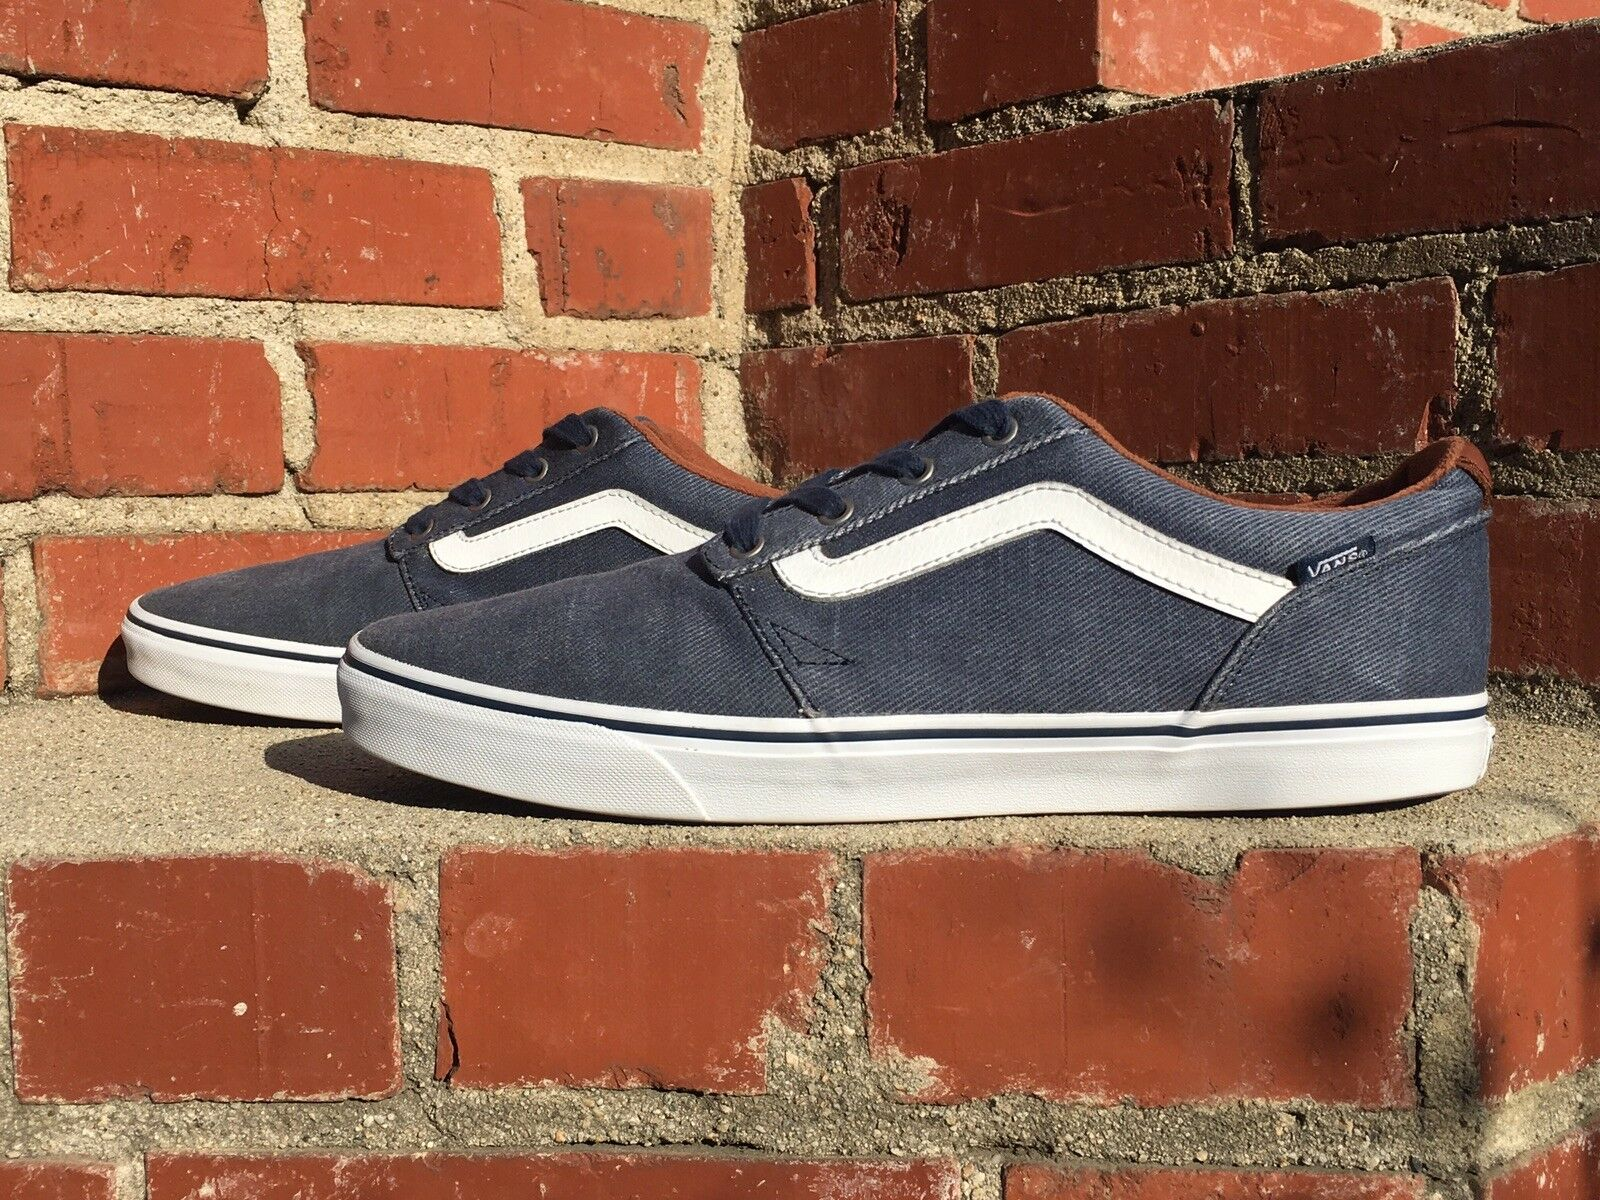 Vans Rare Style 721356 Blue w Rust Brown Lining Skate Shoe  Uomo Size 13